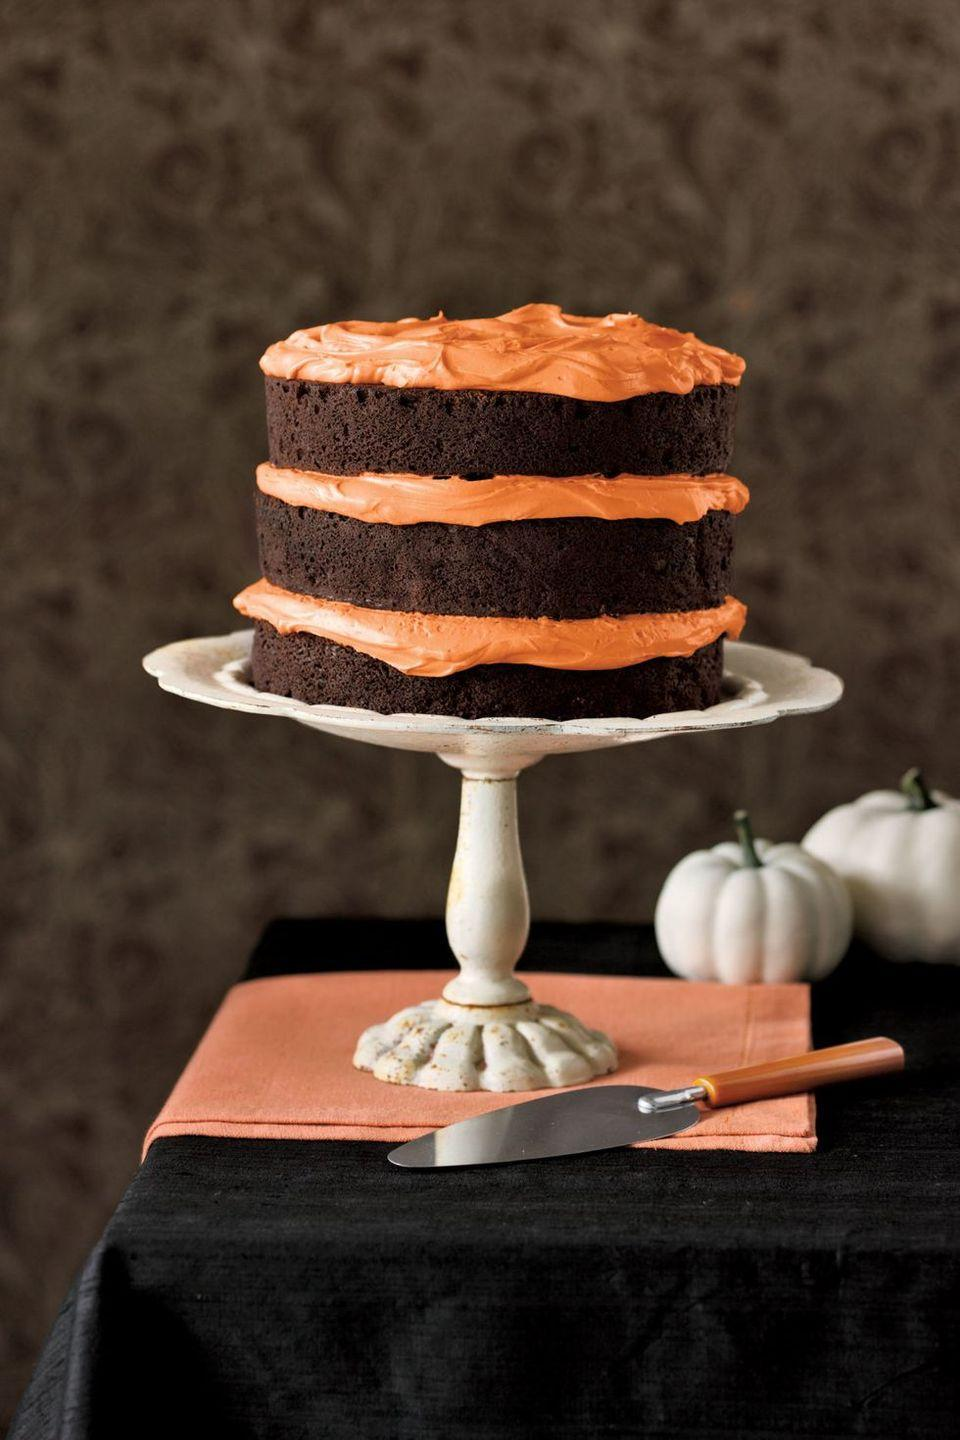 """<p>In between the chocolate cake tiers, add a thick layer of orange frosting for the ultimate Halloween cake.</p><p><em><a href=""""https://www.goodhousekeeping.com/food-recipes/a5721/chocolate-pumpkin-cake-cupcakes-3922/"""" rel=""""nofollow noopener"""" target=""""_blank"""" data-ylk=""""slk:Get the recipe for Chocolate Pumpkin Cake »"""" class=""""link rapid-noclick-resp"""">Get the recipe for Chocolate Pumpkin Cake »</a></em></p>"""